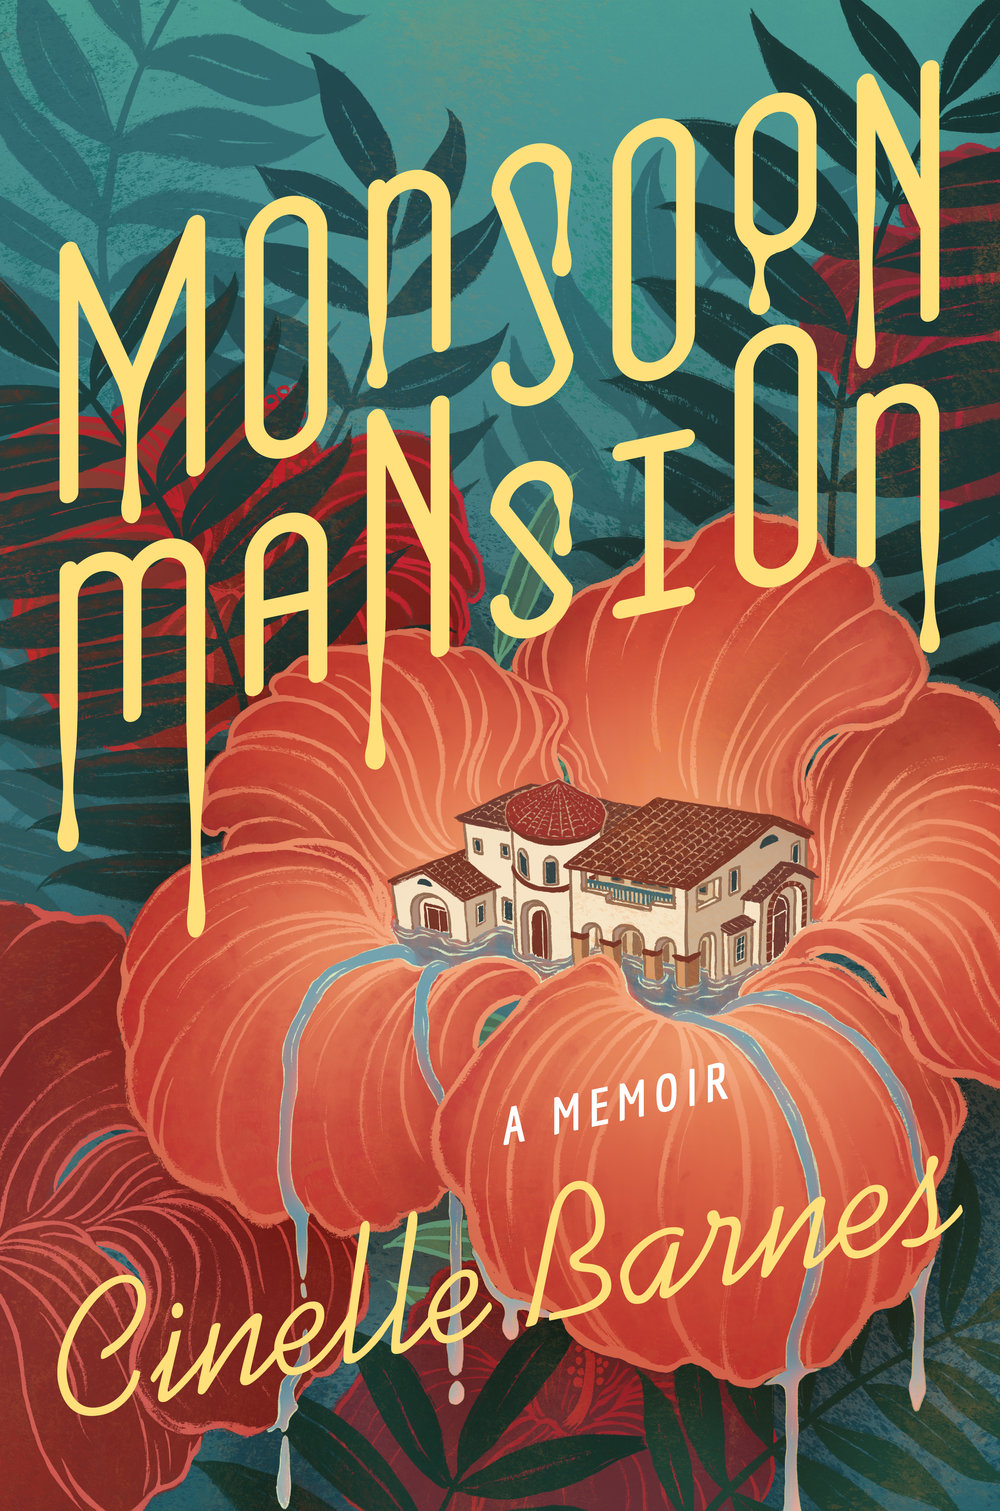 Monsoon mansion - Release May 1, 2018